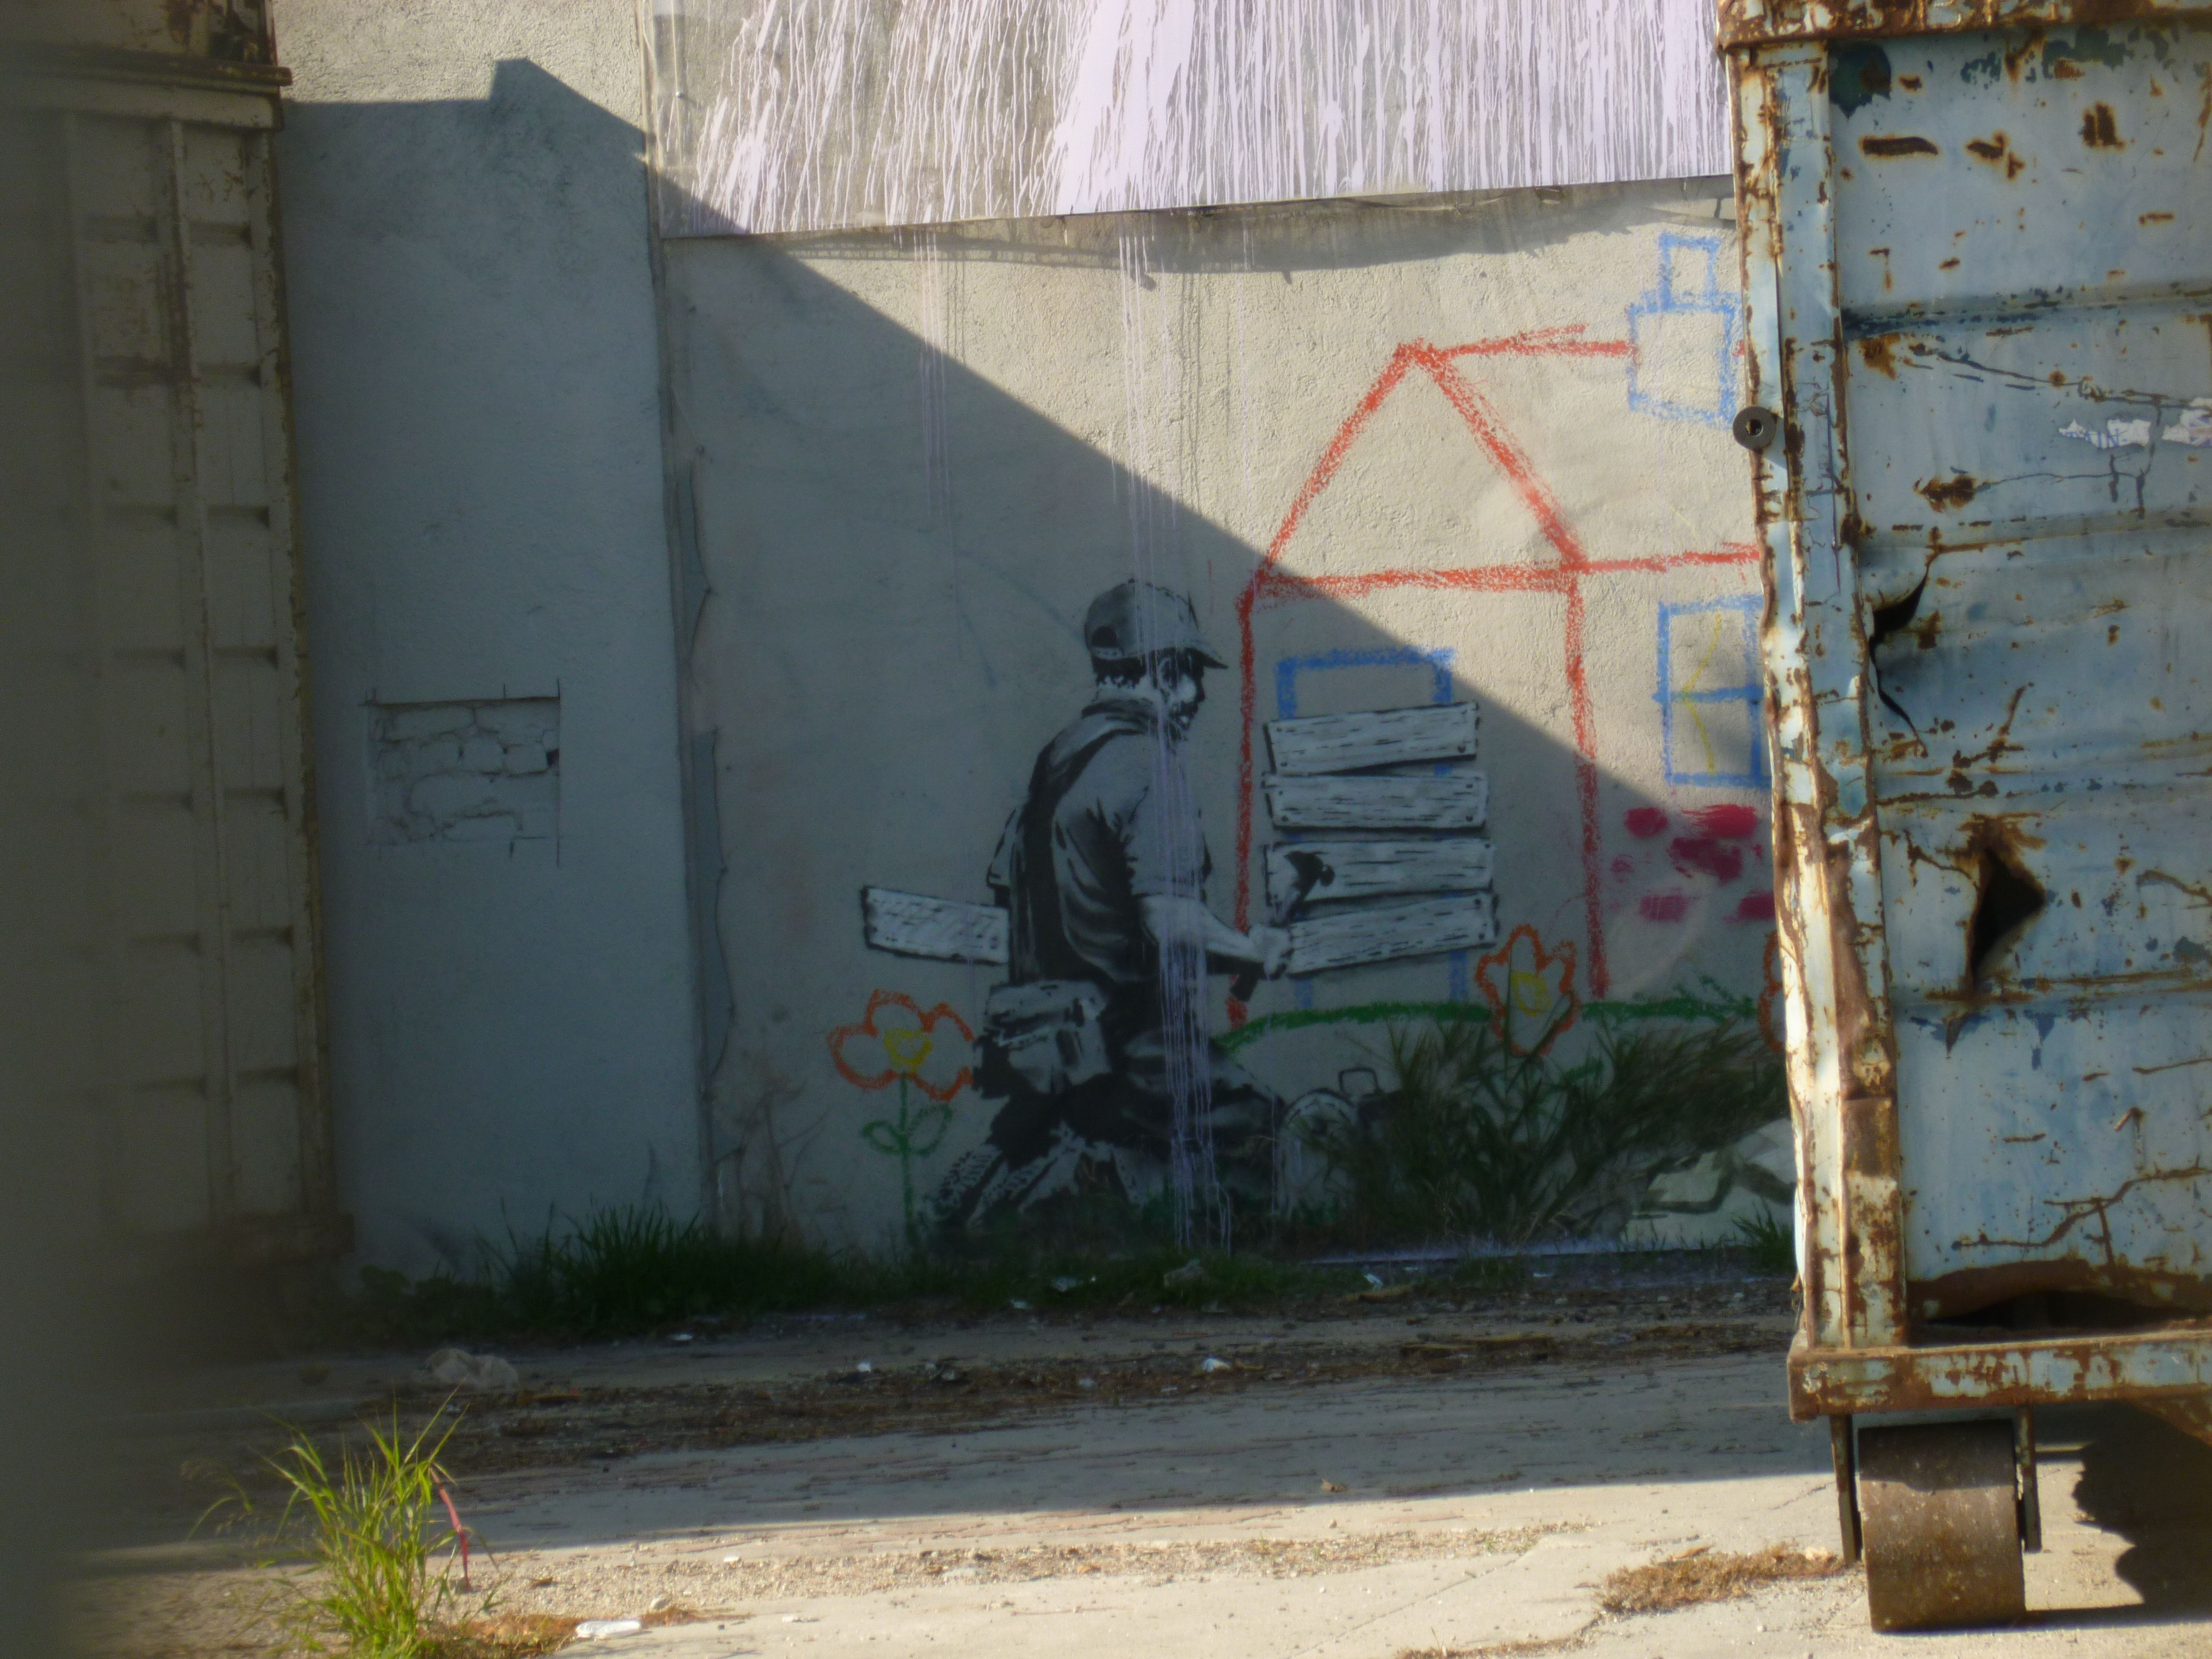 Banksy in East LA, had to trespass a little to see this one ;)